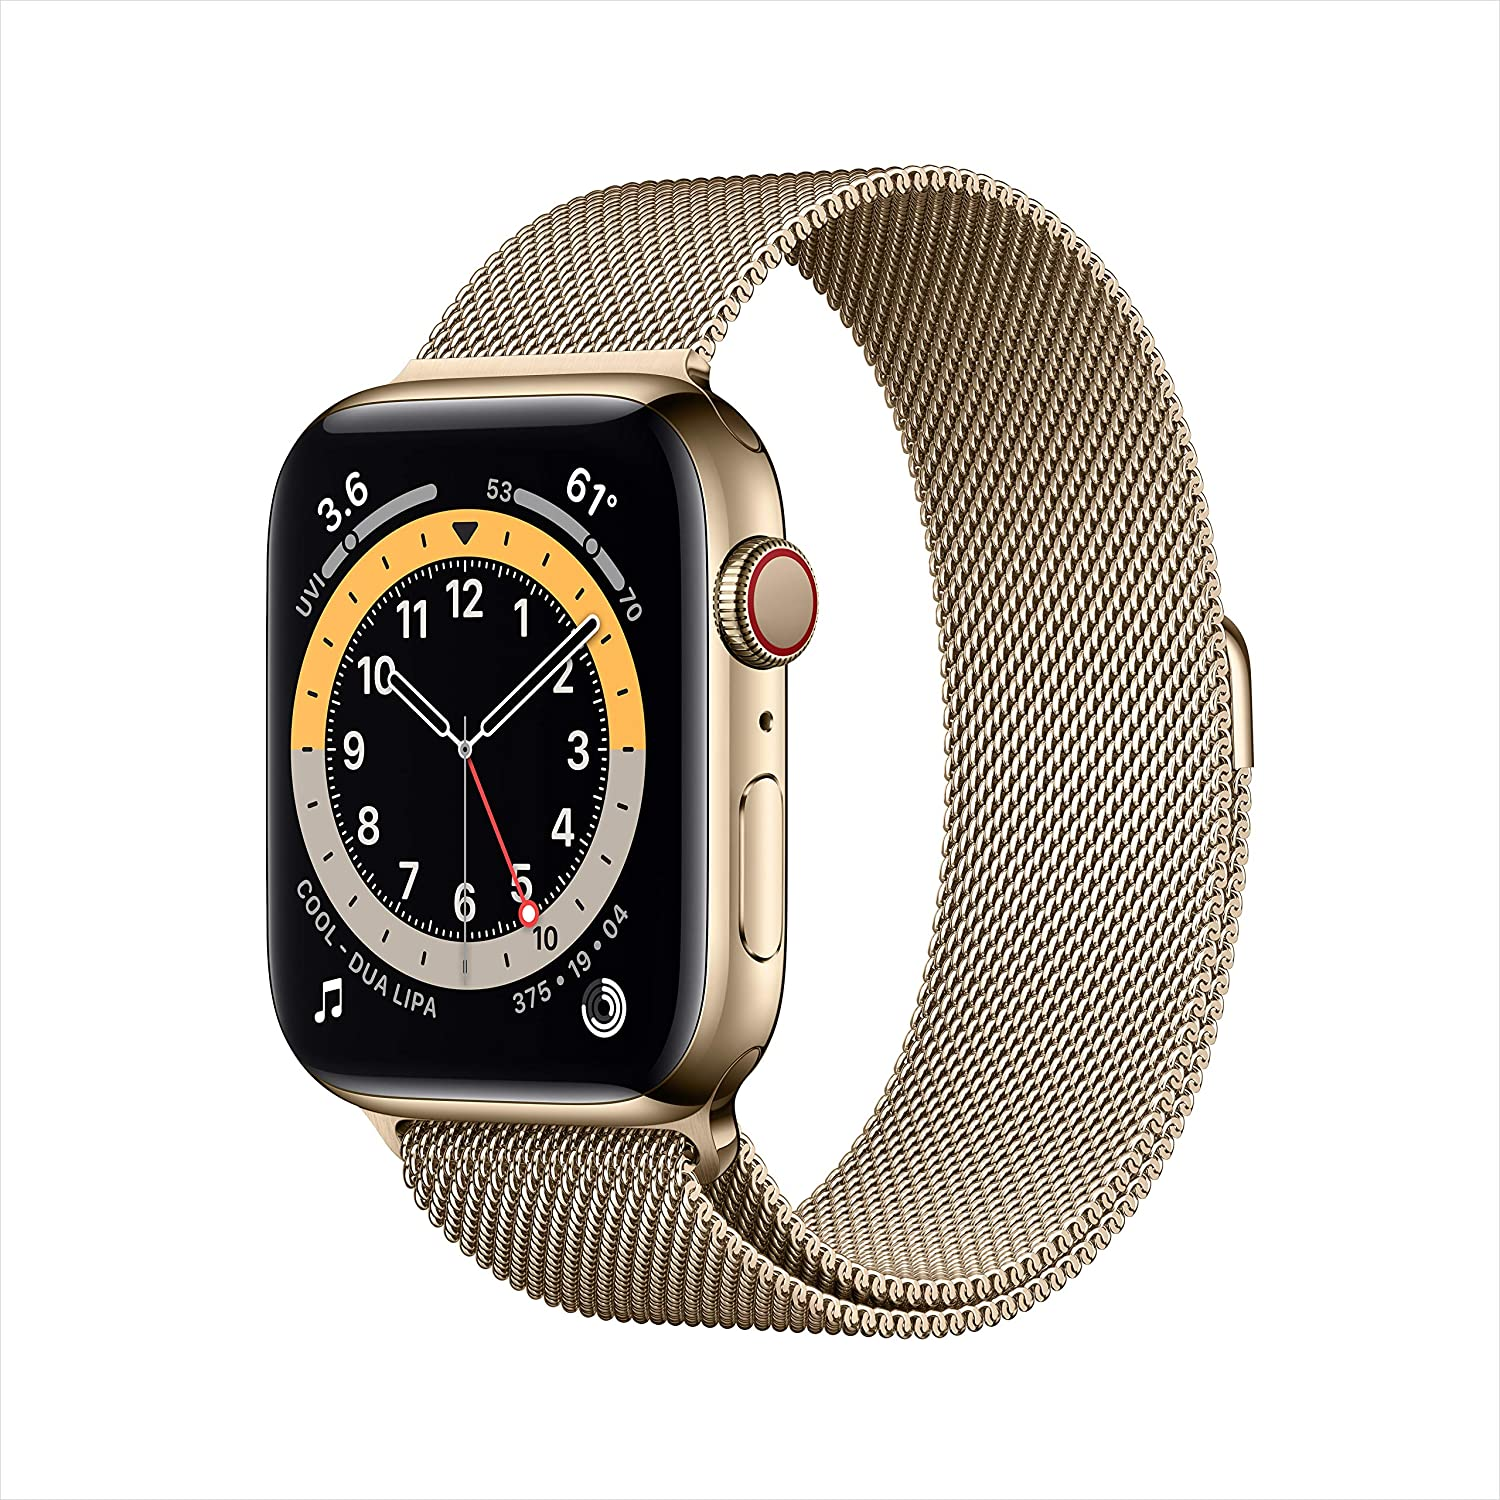 Apple Watch Series 6 (44mm) (Cellular) Specifications